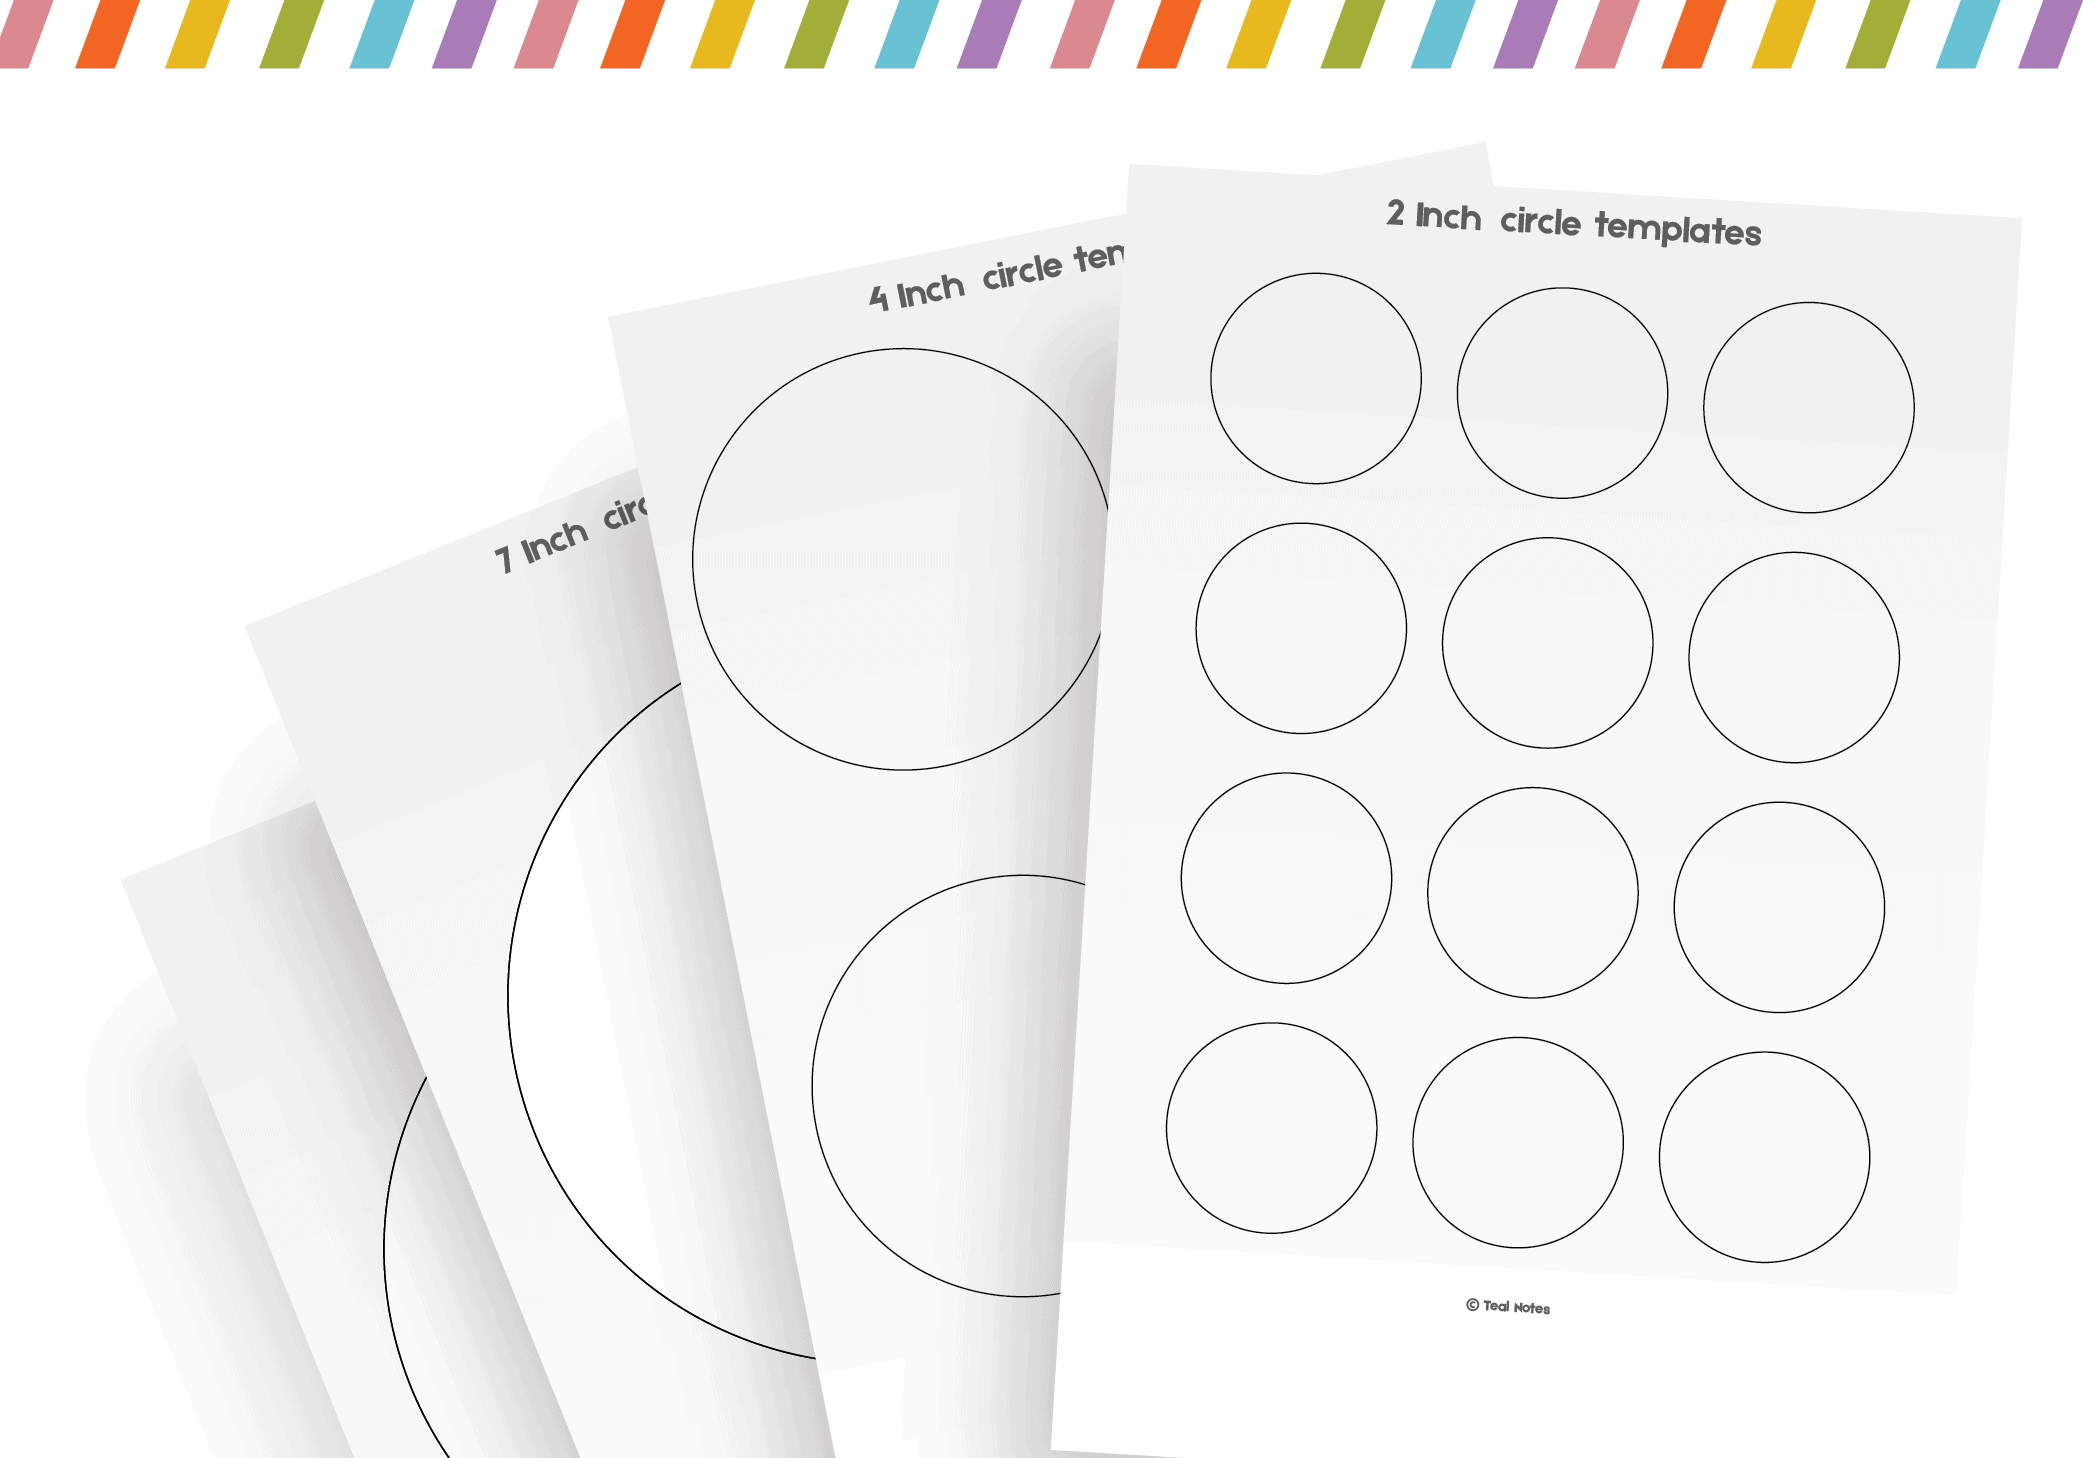 image about 2 Inch Circle Template Printable identify Circle Template: Totally free Printable Circle Templates For Your